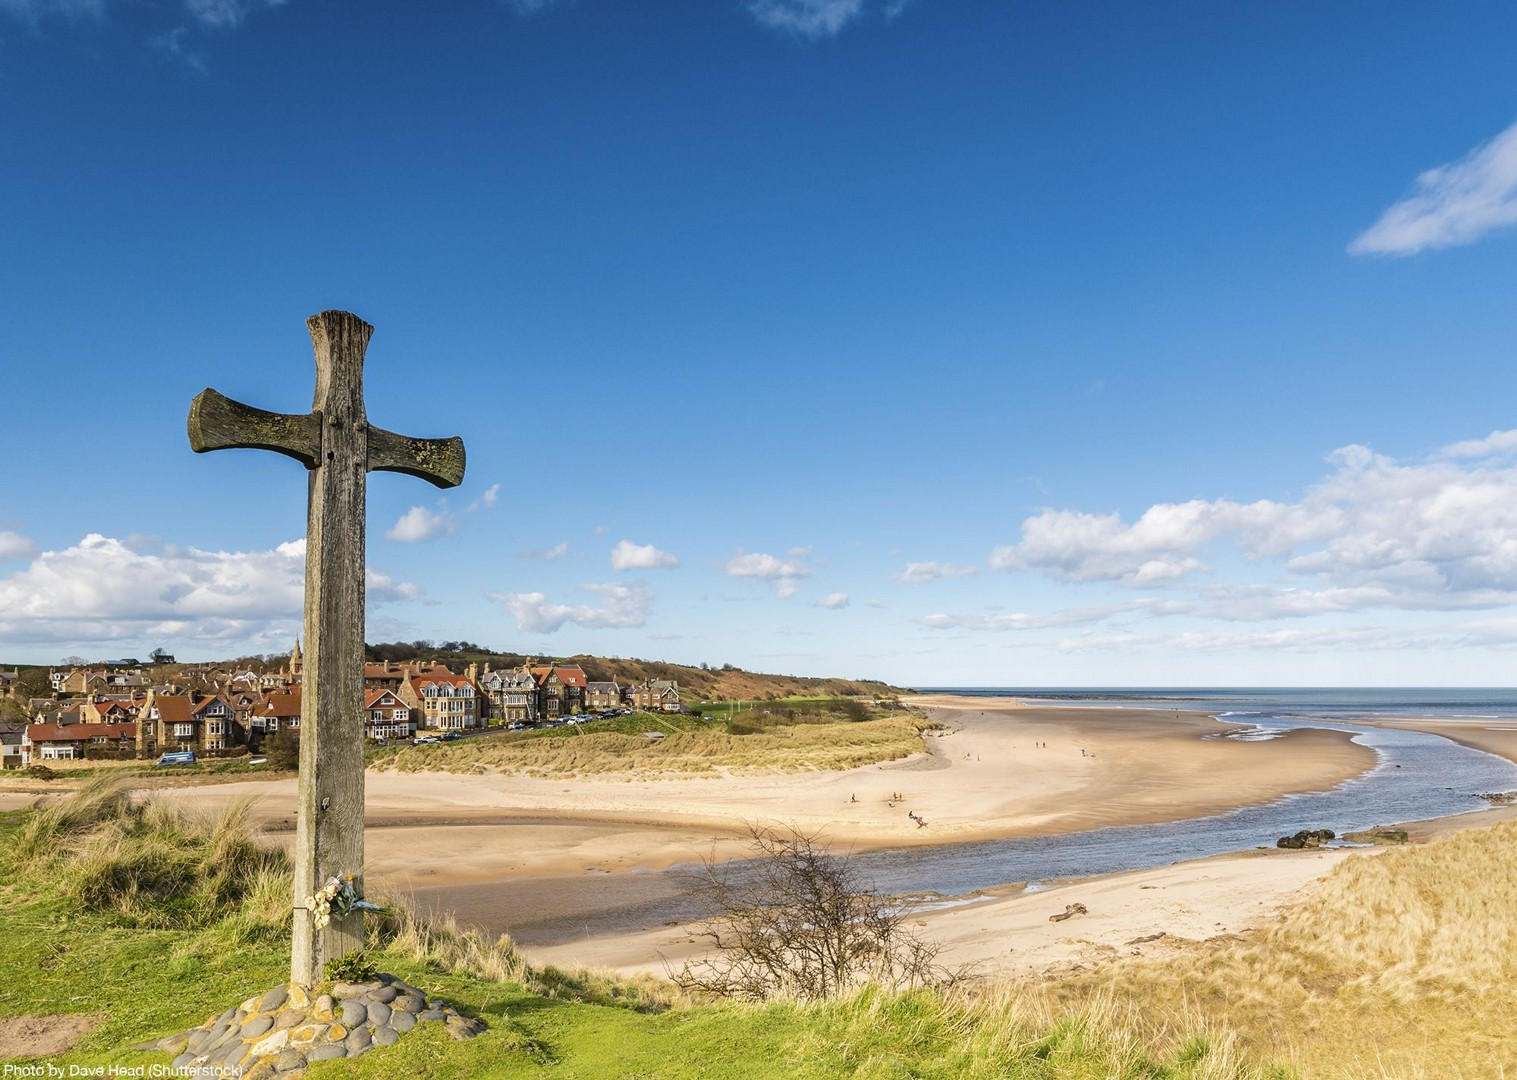 warkworth-beaches-cycling-holiday-bike-tour-self-guided-leisure-uk-england.jpg - UK - Northumberland Coast - 4 Days Cycling - Self-Guided Family Cycling Holiday - Family Cycling